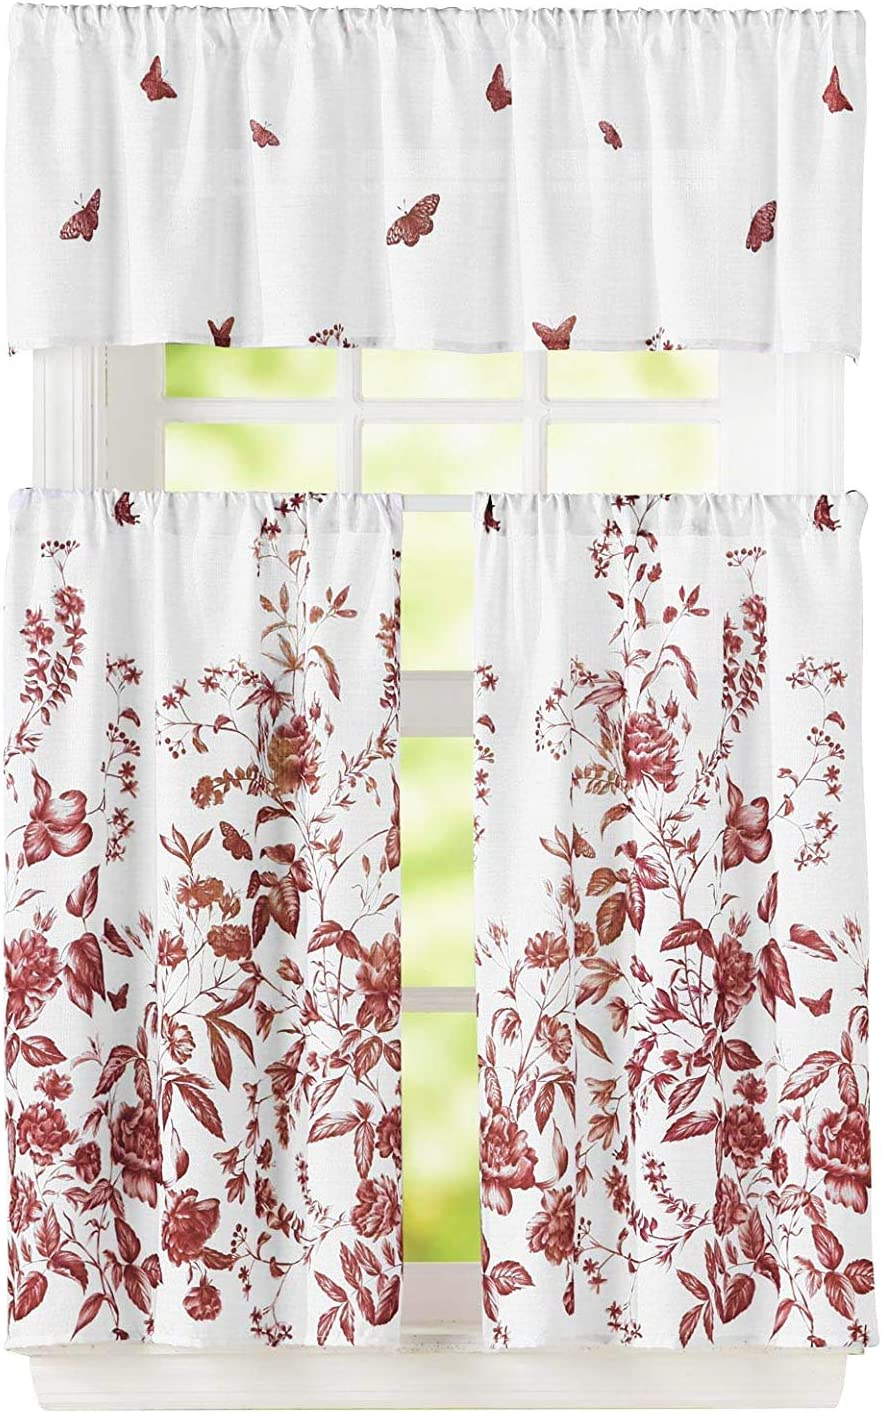 Bathroom and More 3 Piece Window Curtain Set Floral Design, One Valance, Two Tiers (Burgundy, 36